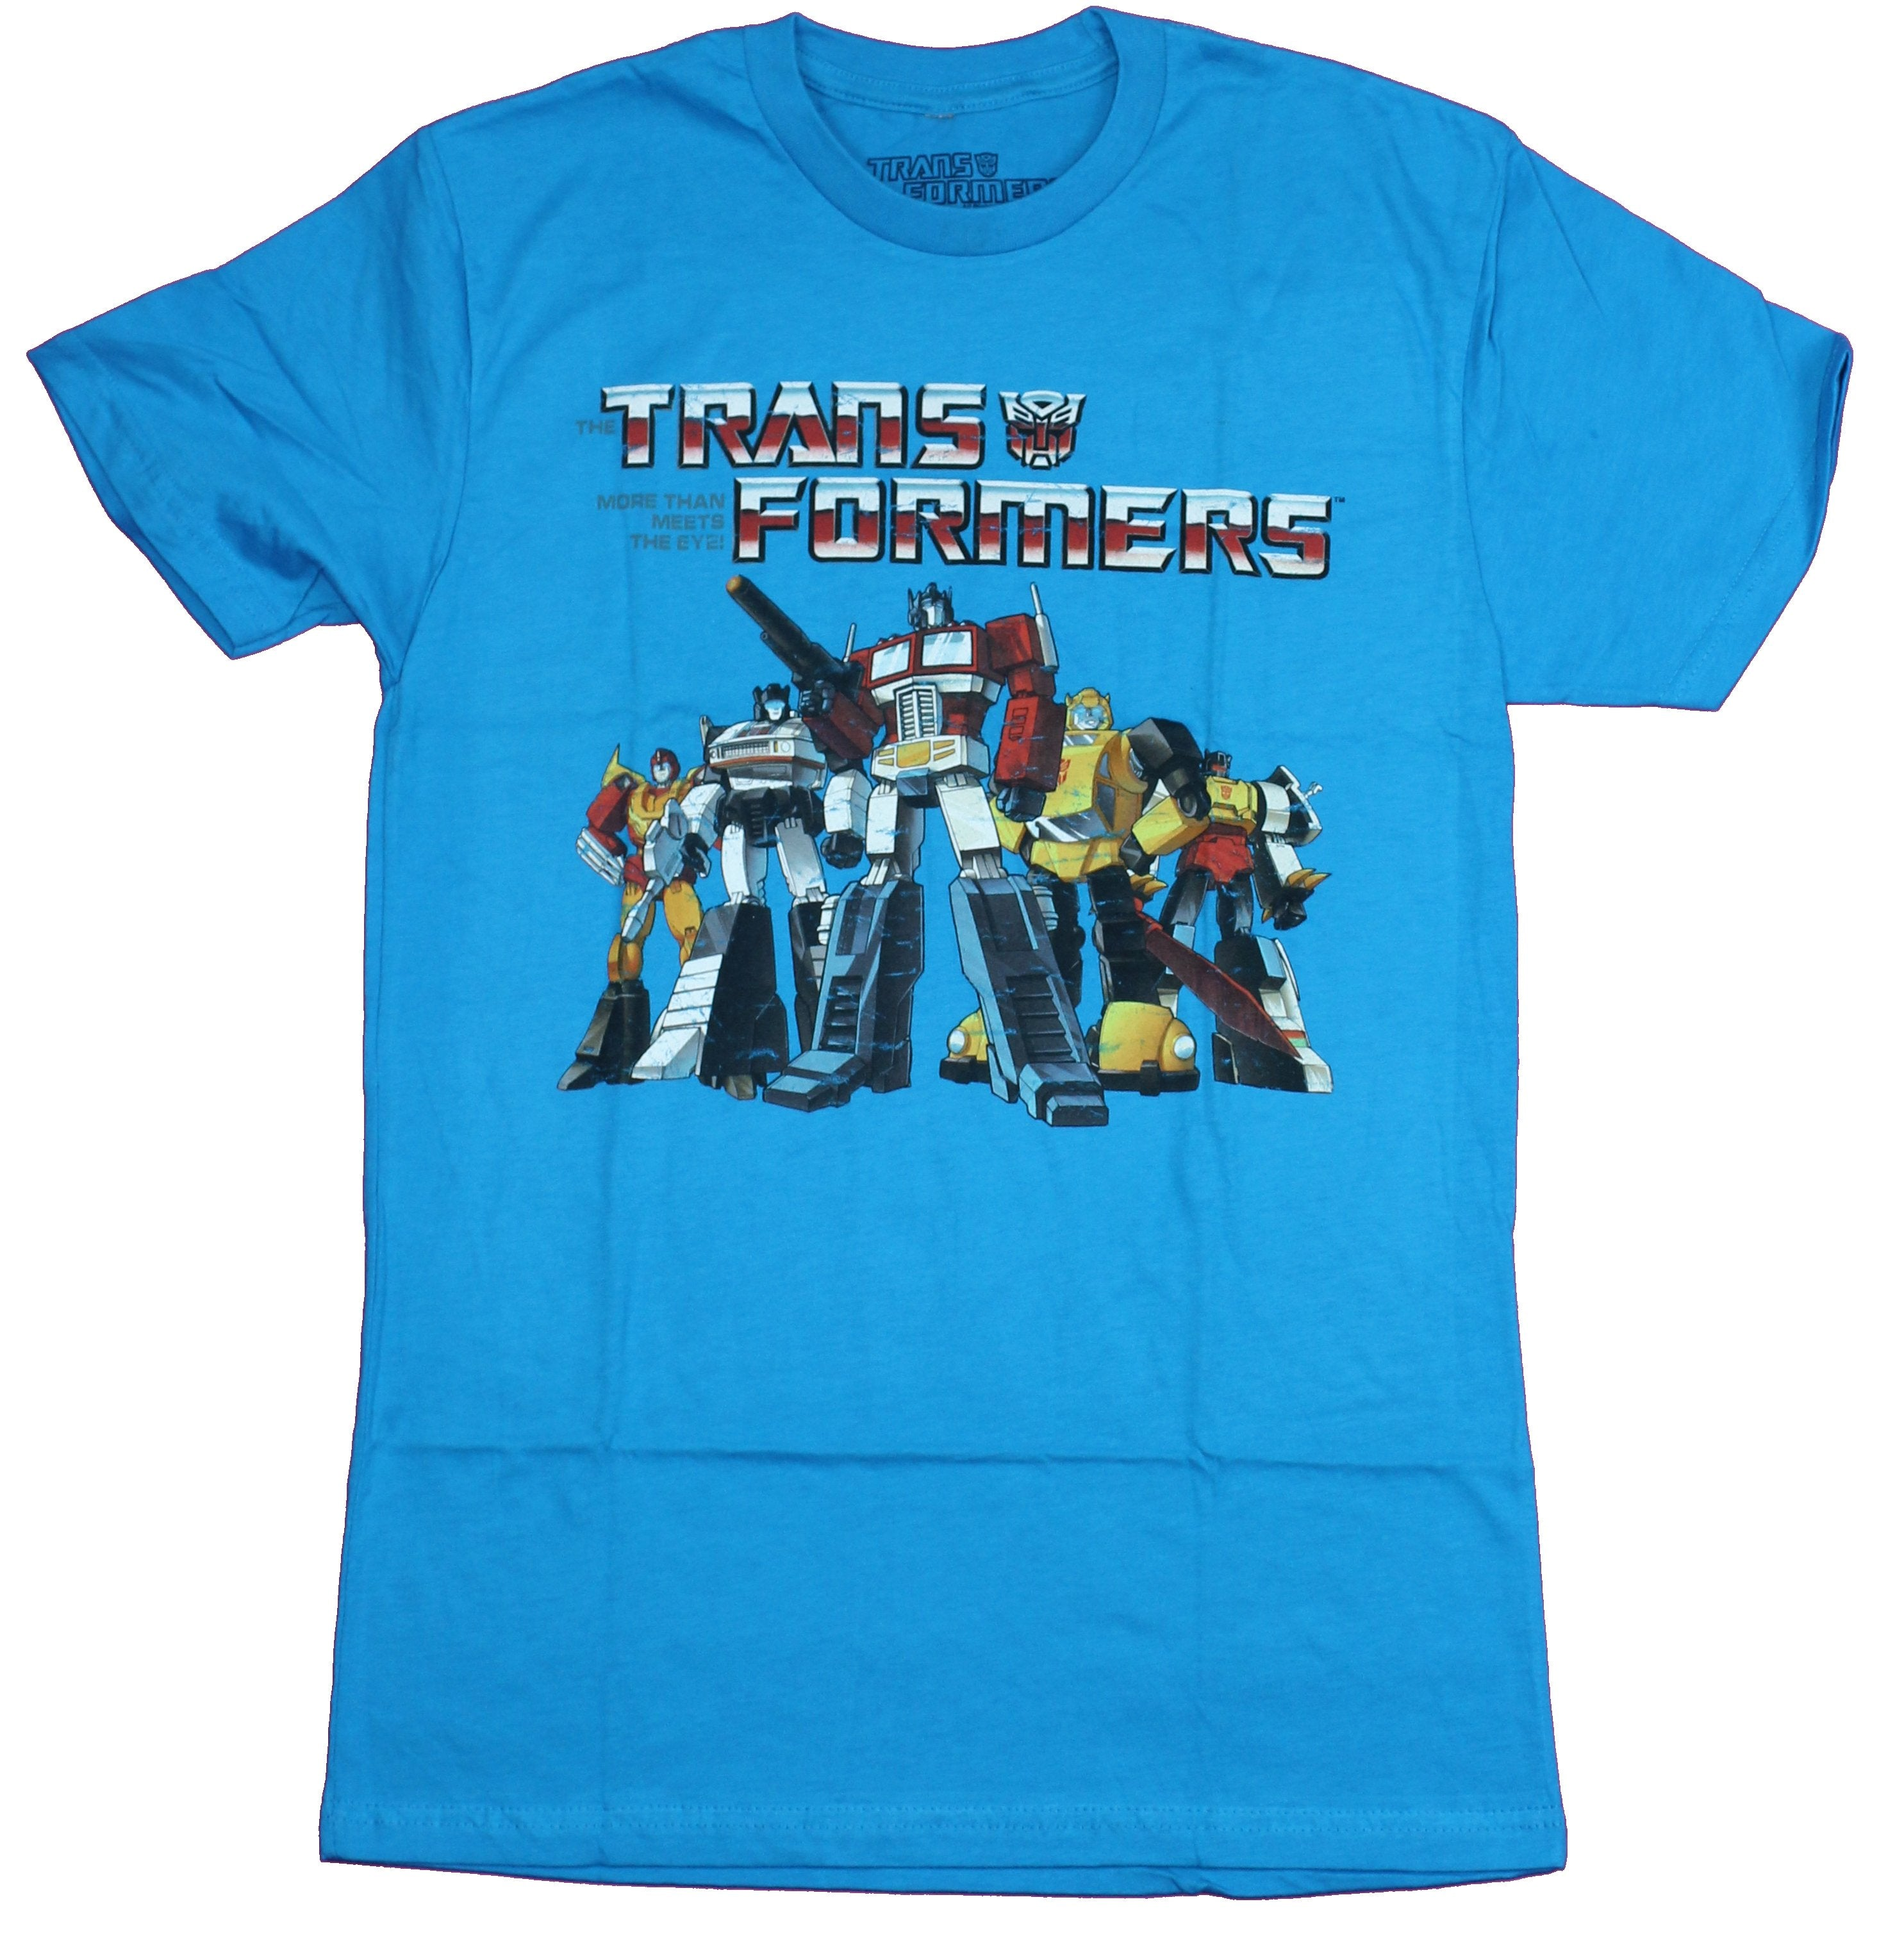 Transformers Mens  T-Shirt - Autobot Classic Group Under Logo Image